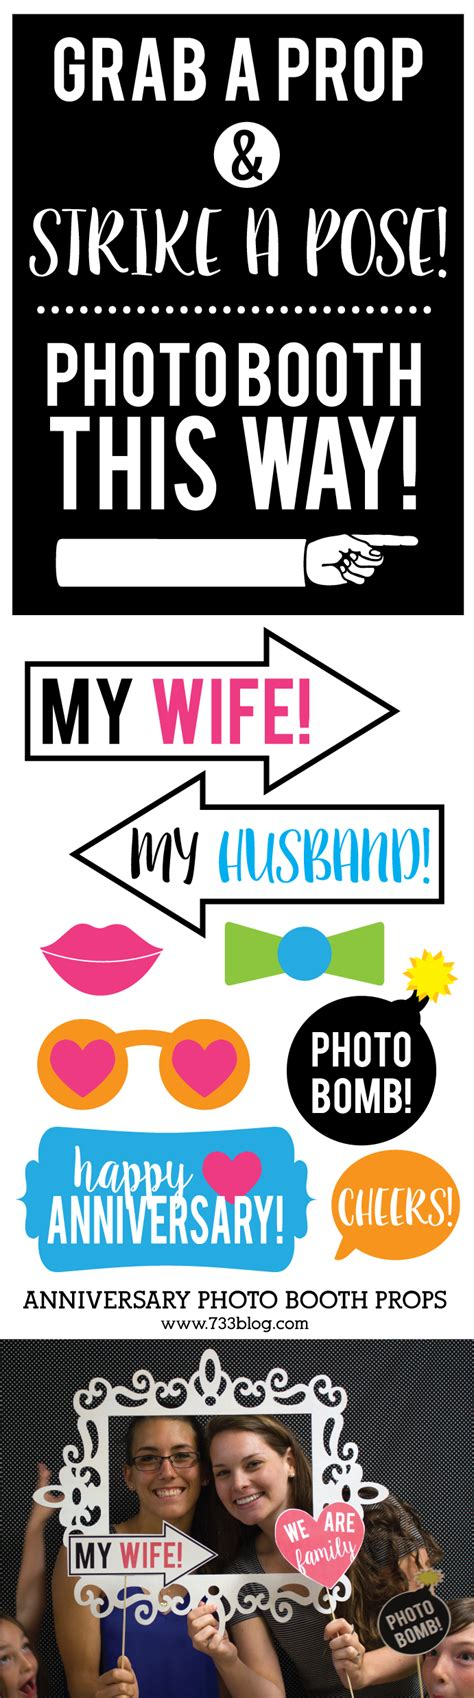 printable retirement photo booth props printable anniversary photo booth props photo booth